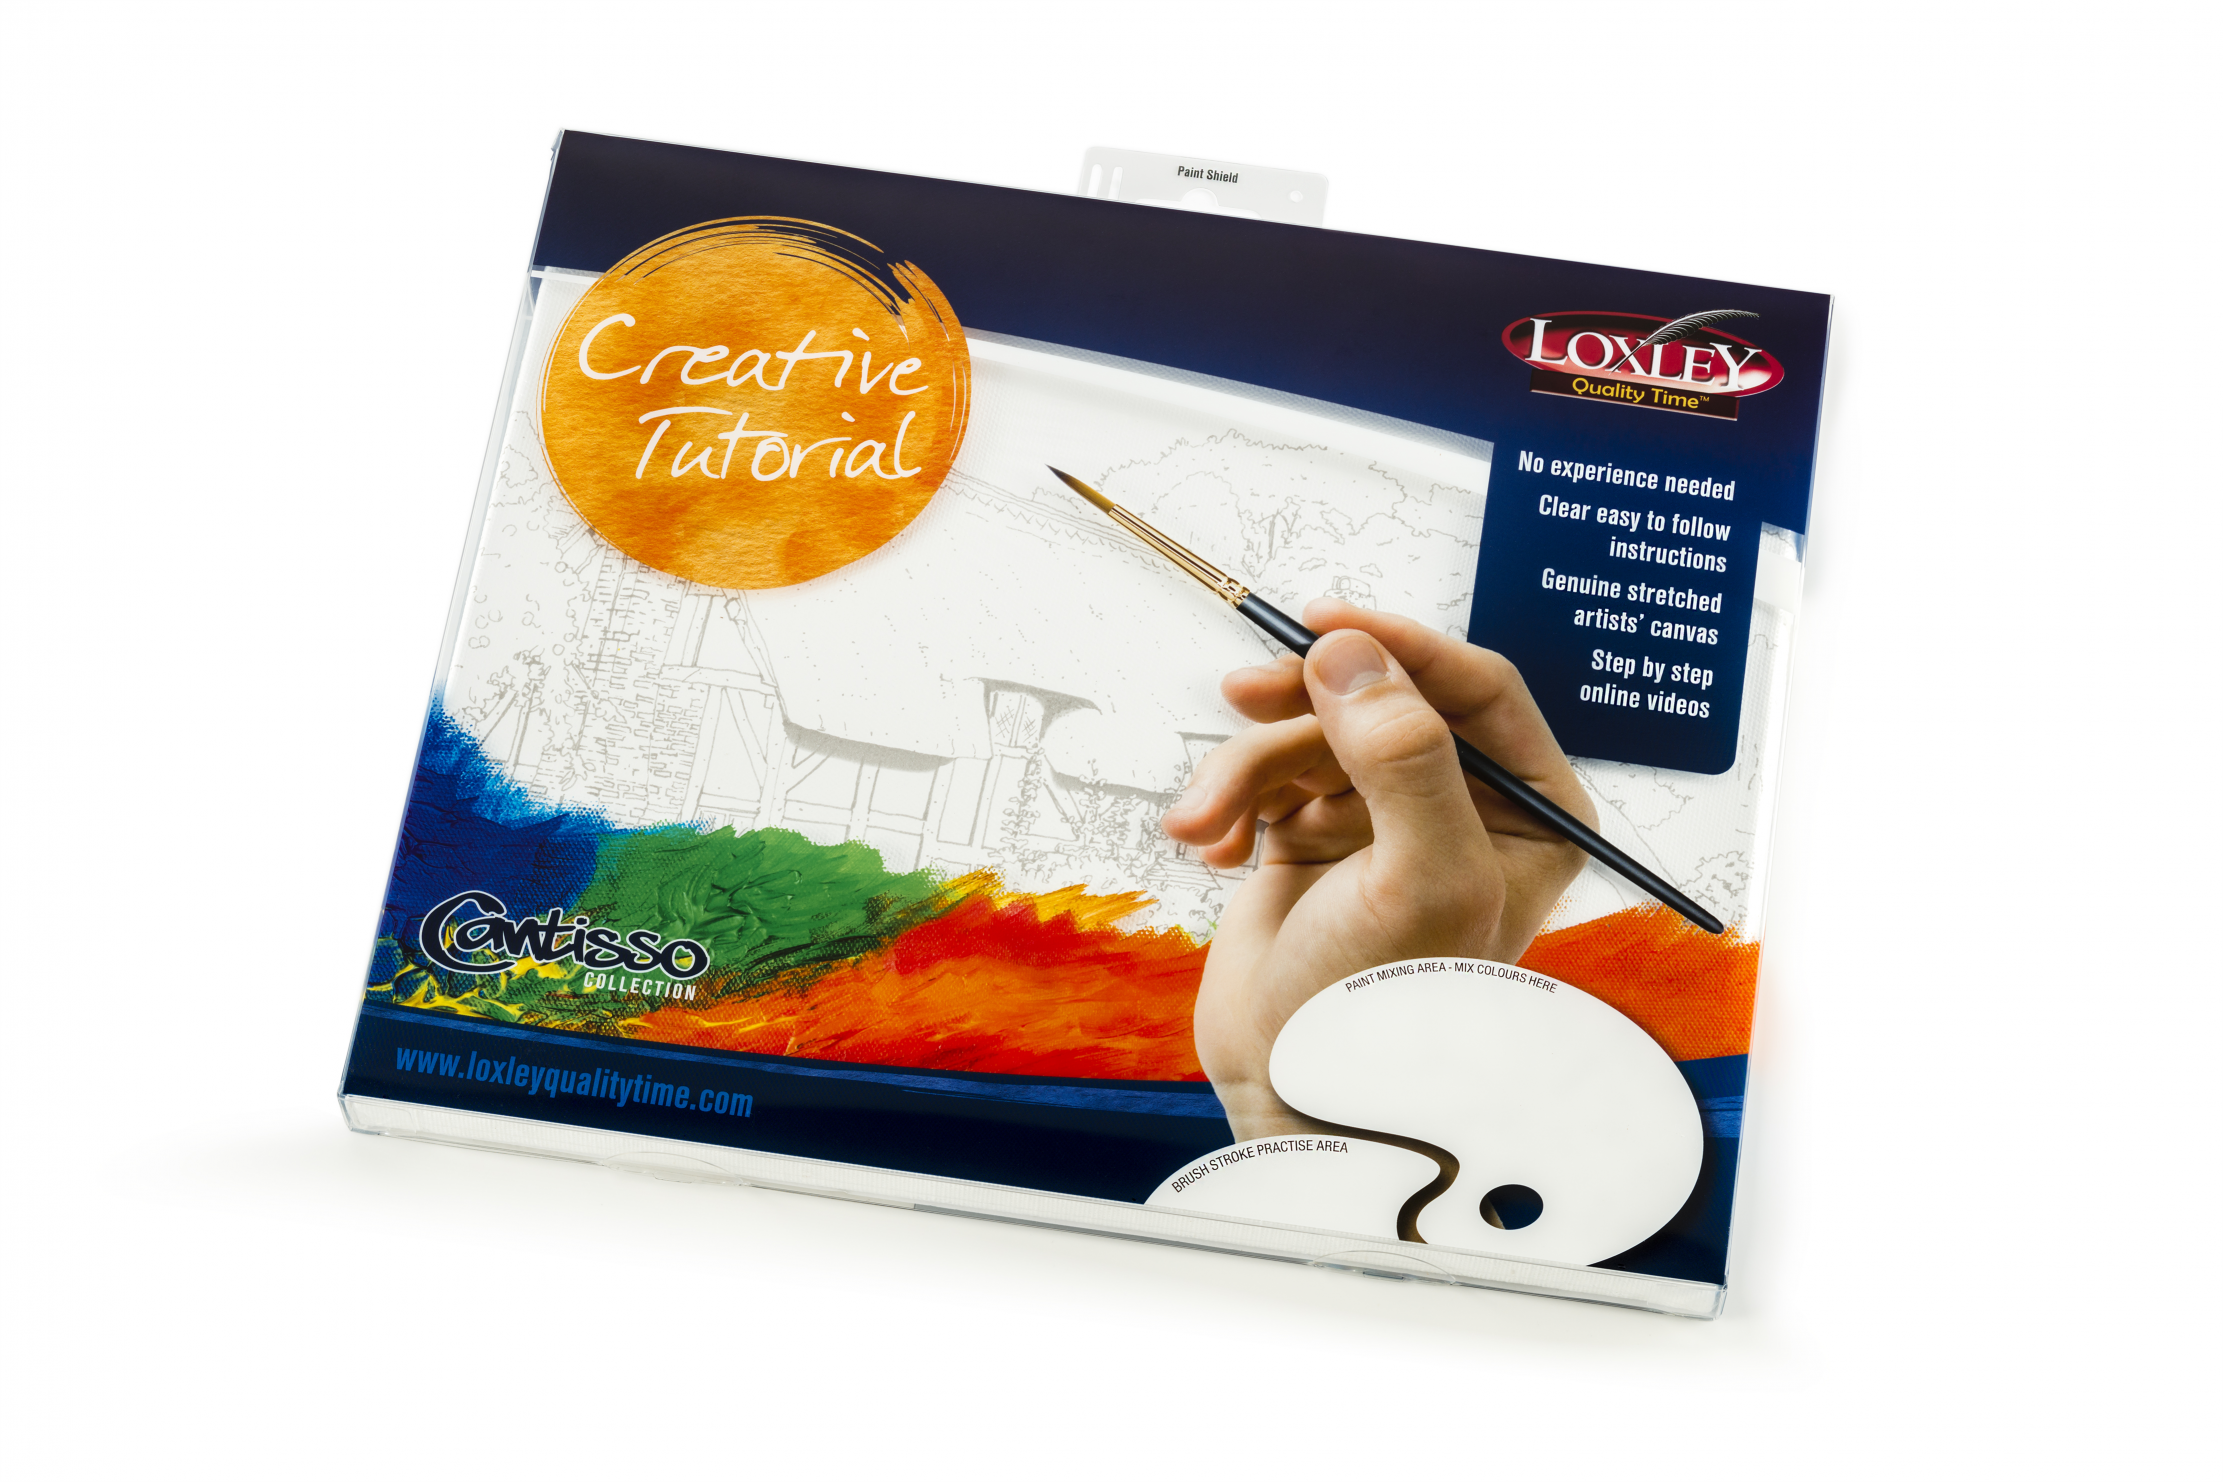 The Perfect Art Gift – Quality Time Kit